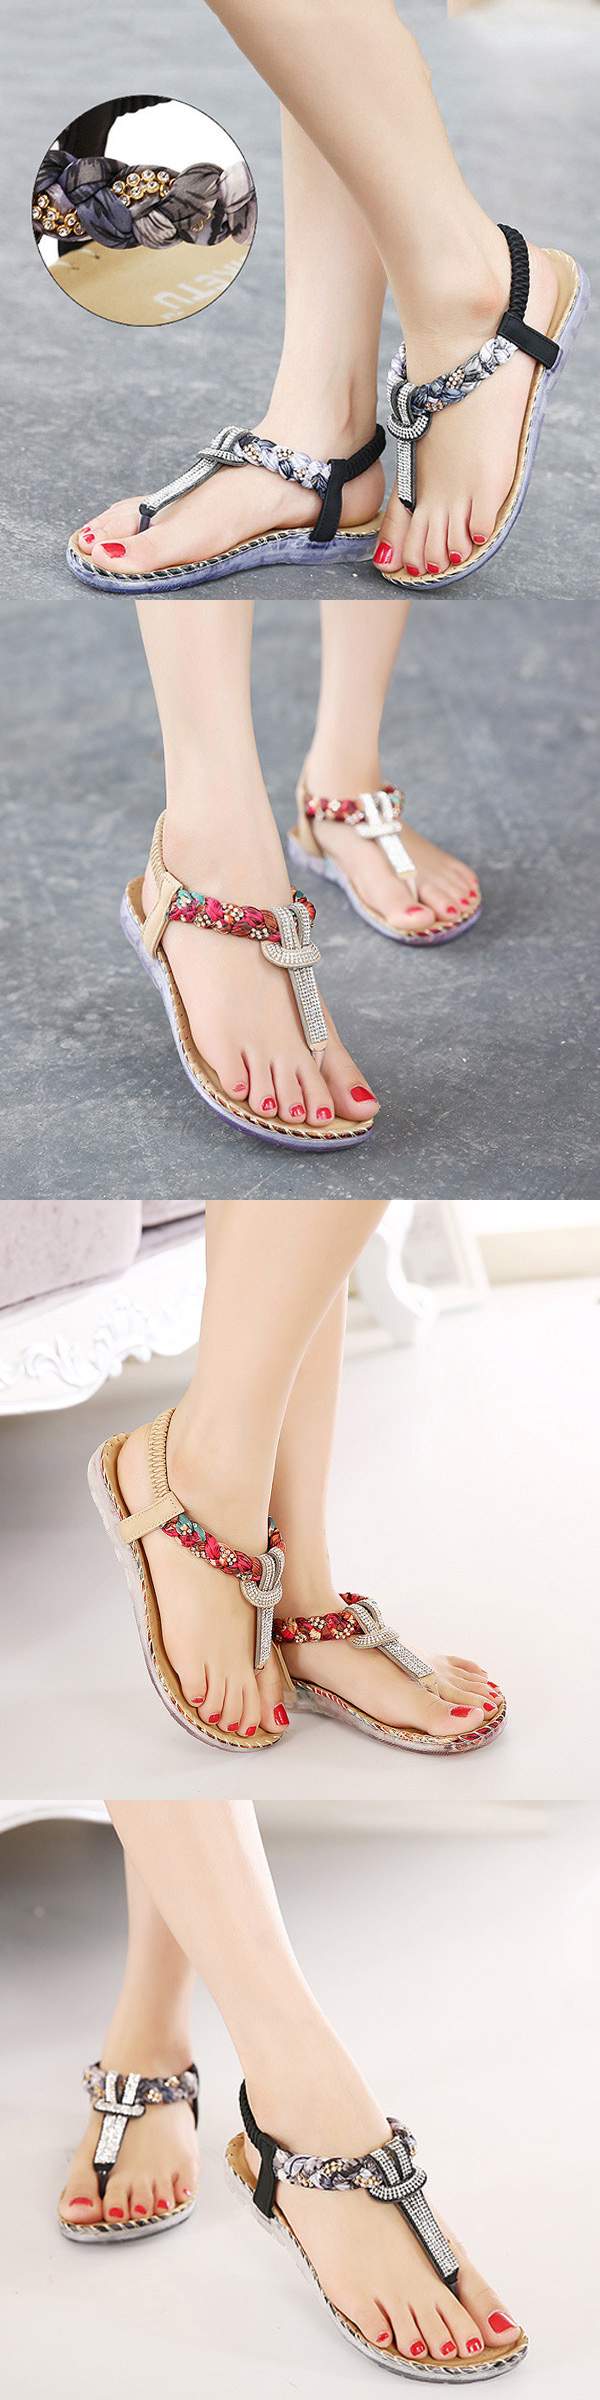 1b03b98cf66c8 US 18.75  Boho Style Bohemian Bead Floral Elastic Clip Toe T Strap Slip On Flat  Beach Sandals  Boho Summer Sandals  Boho Beach Casual Sandals For Women